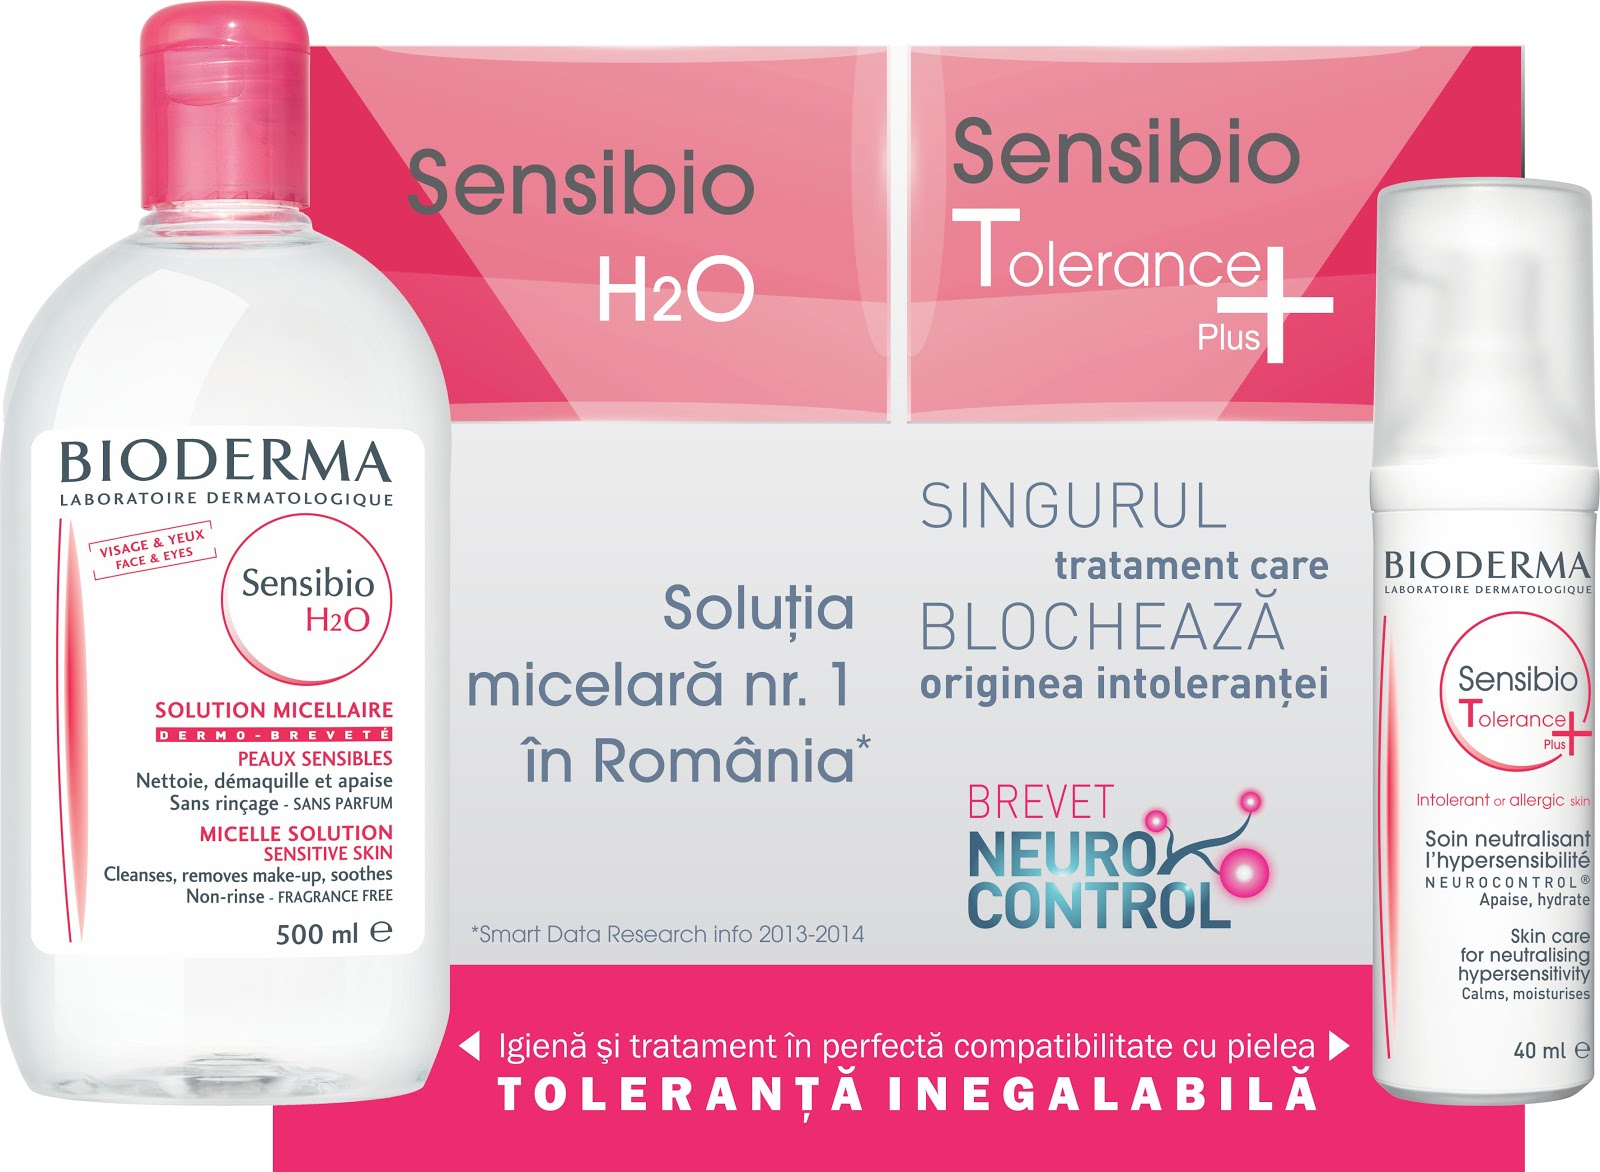 Bioderma, sensitive skin